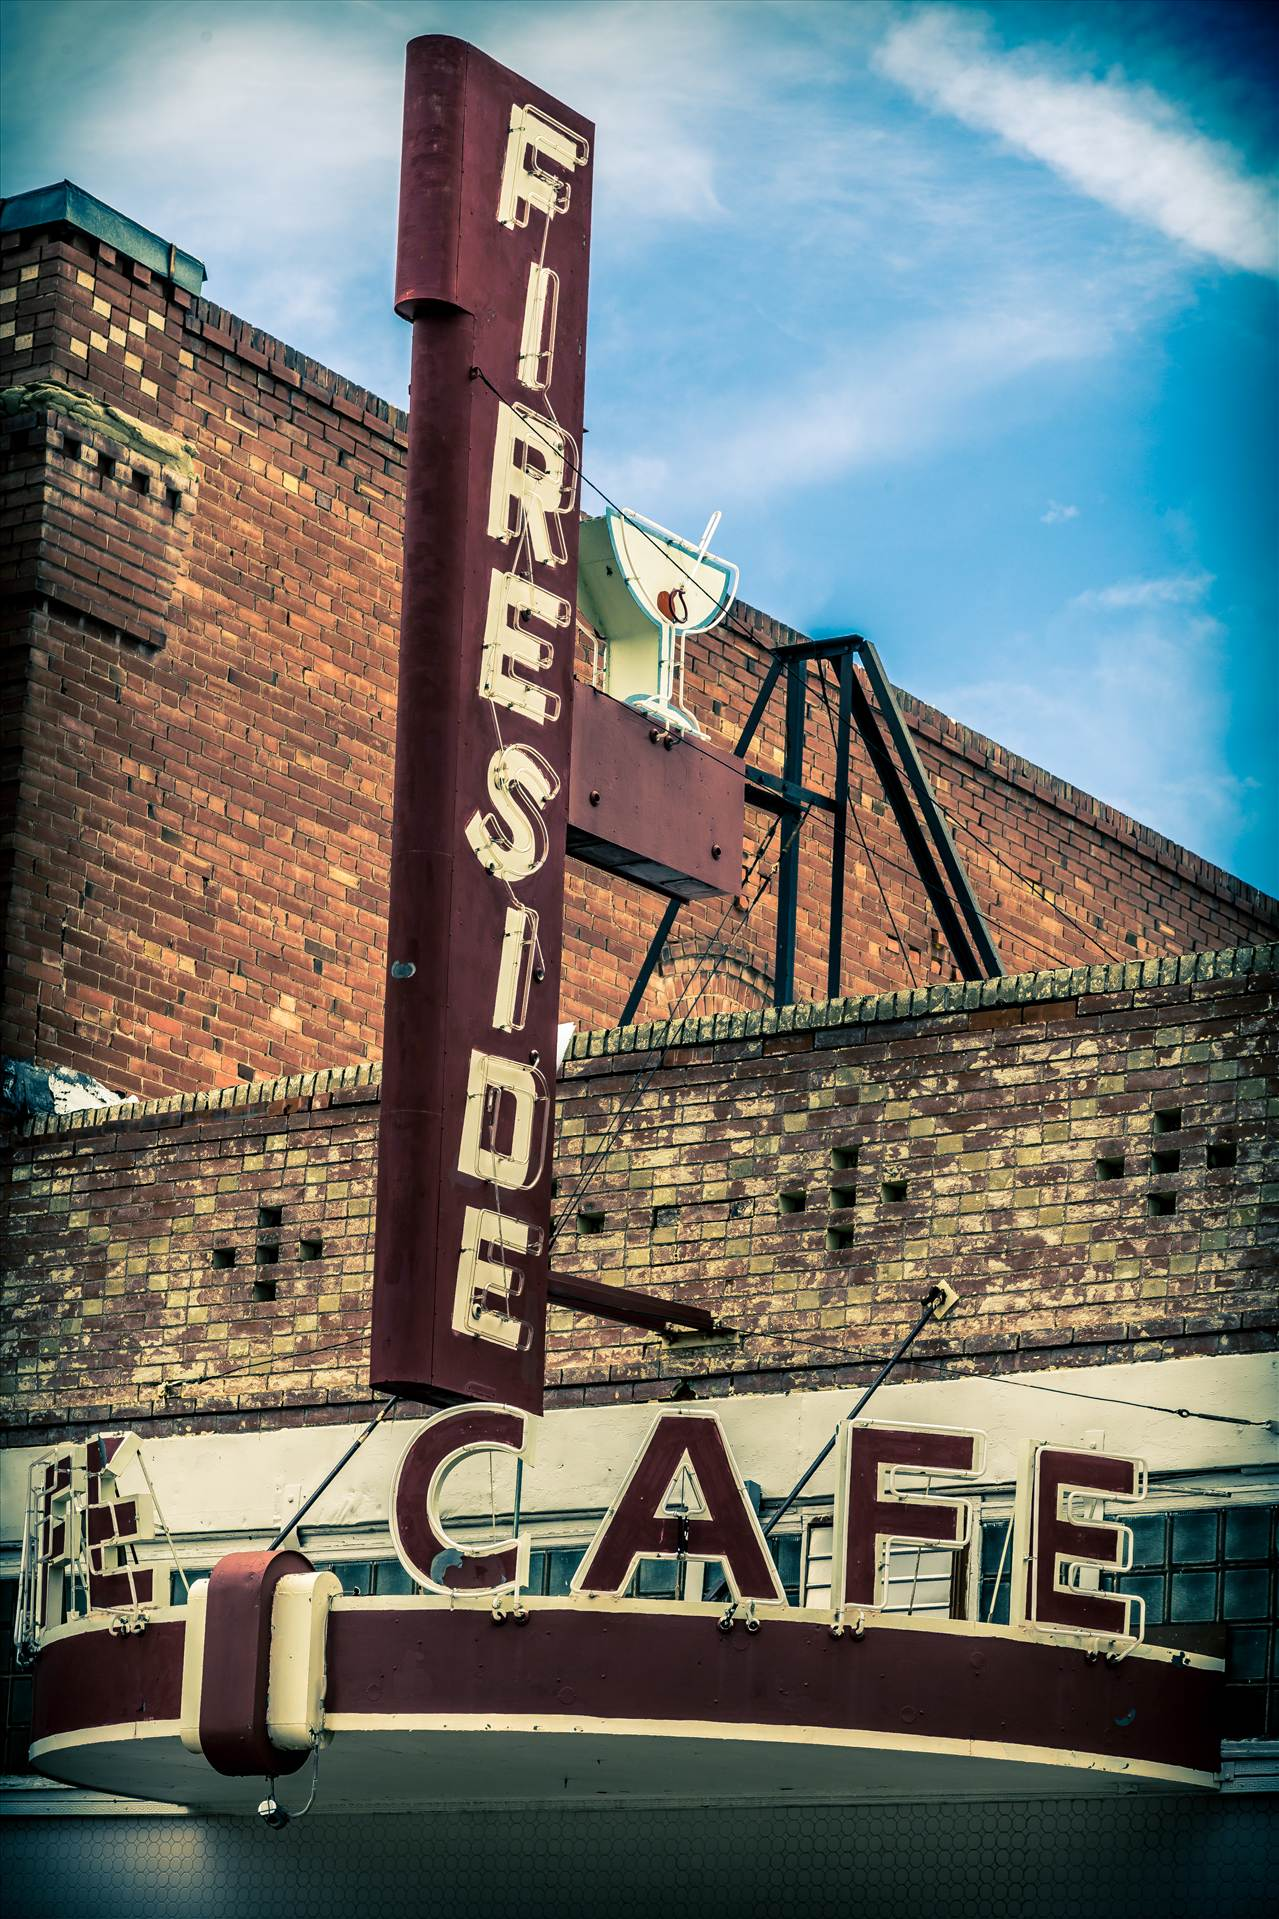 Fireside Cafe - An old diner in Fireside, Colorado. by Scott Smith Photos